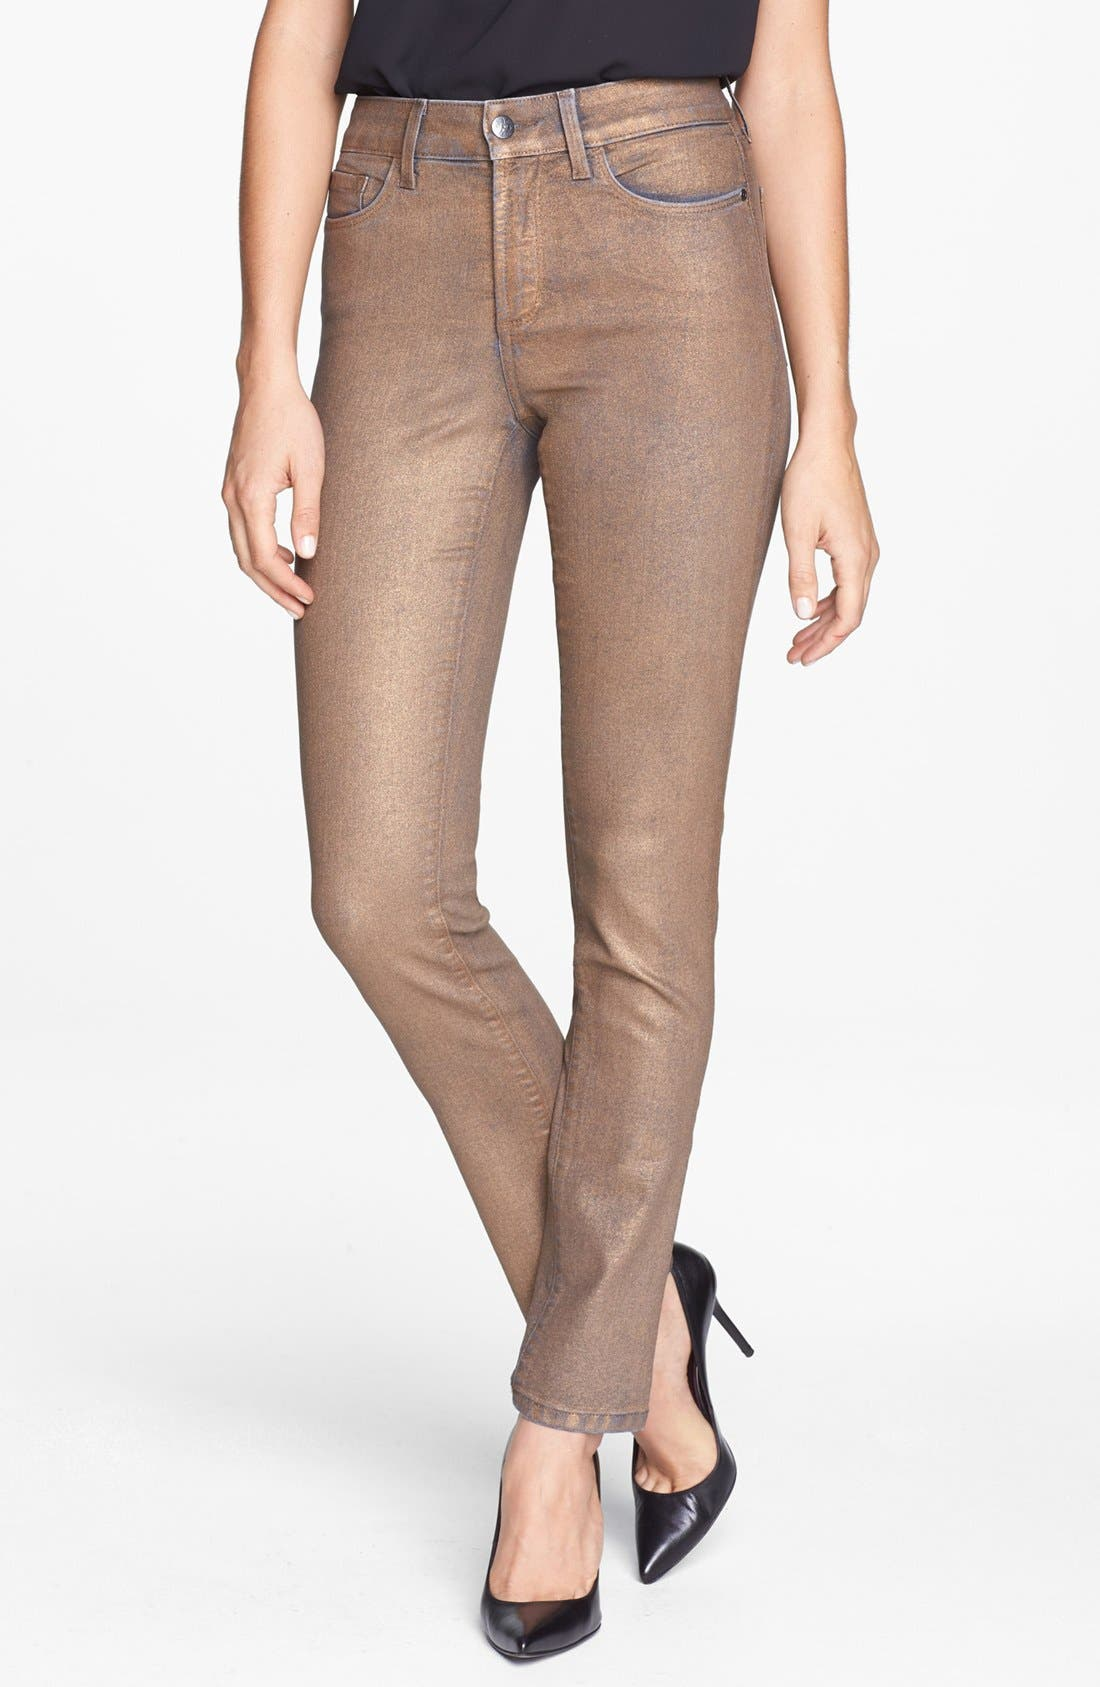 Alternate Image 1 Selected - NYDJ 'Sheri' Coated Stretch Skinny Jeans